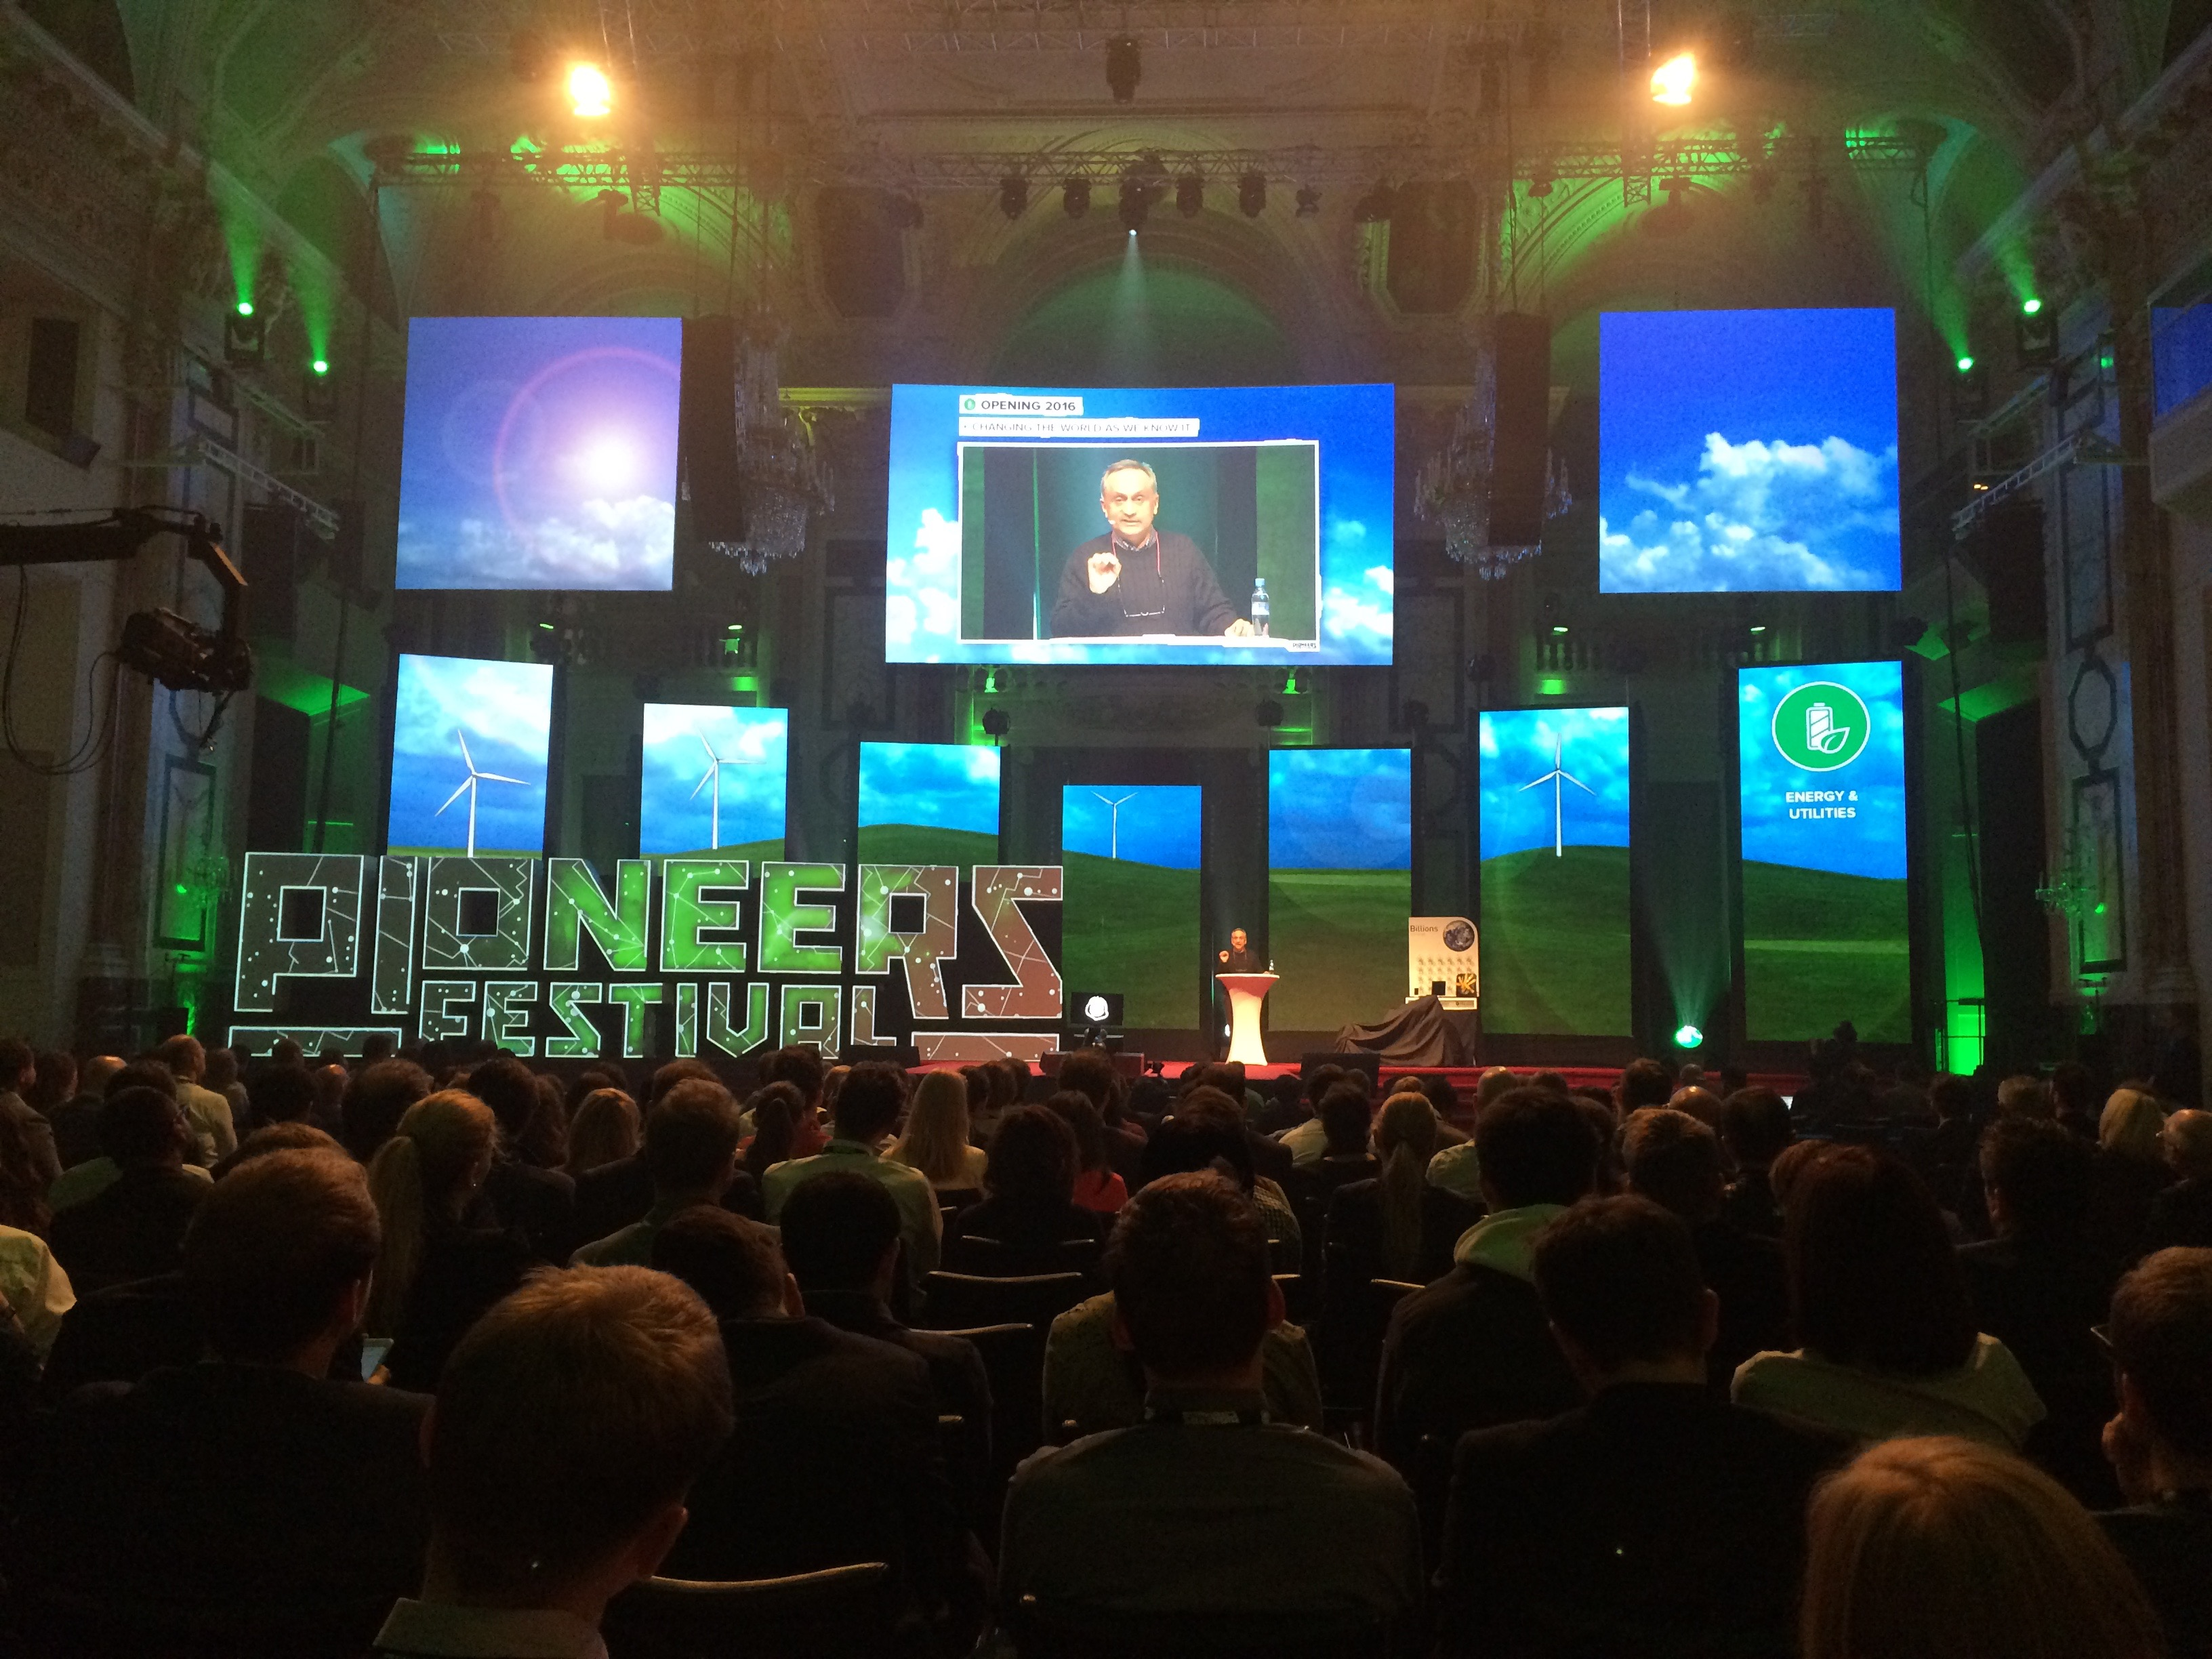 Pioneers Festival – Inspiration not only for startups